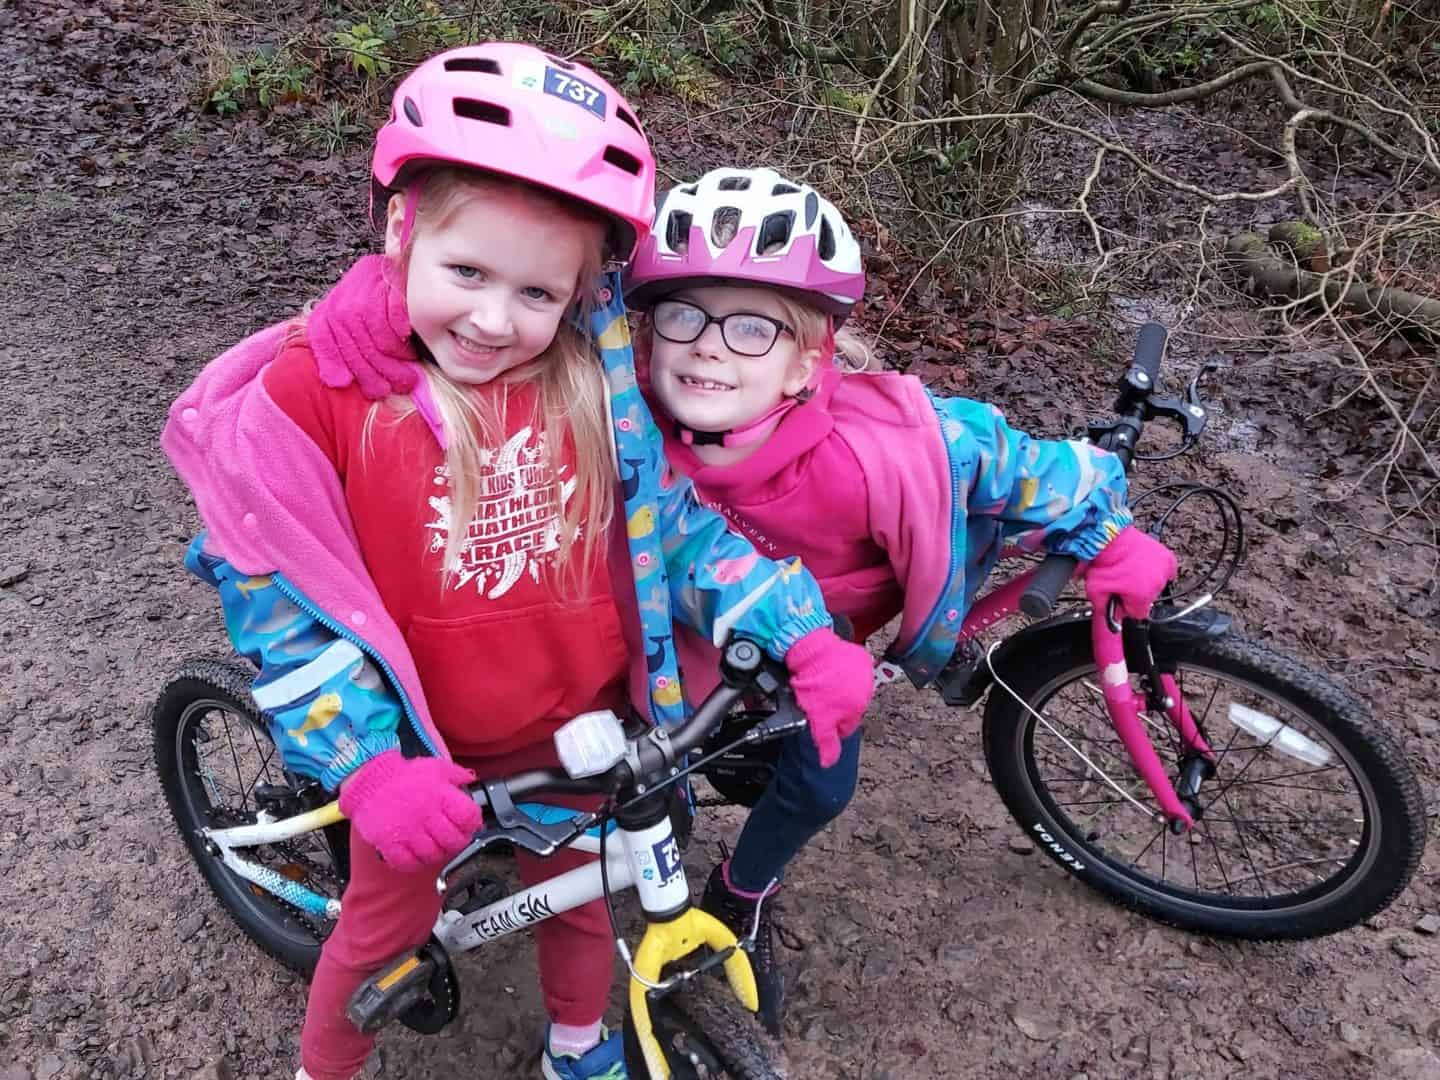 Two girls on bikes standing together on a muddy path at Westonbirt Arboretum